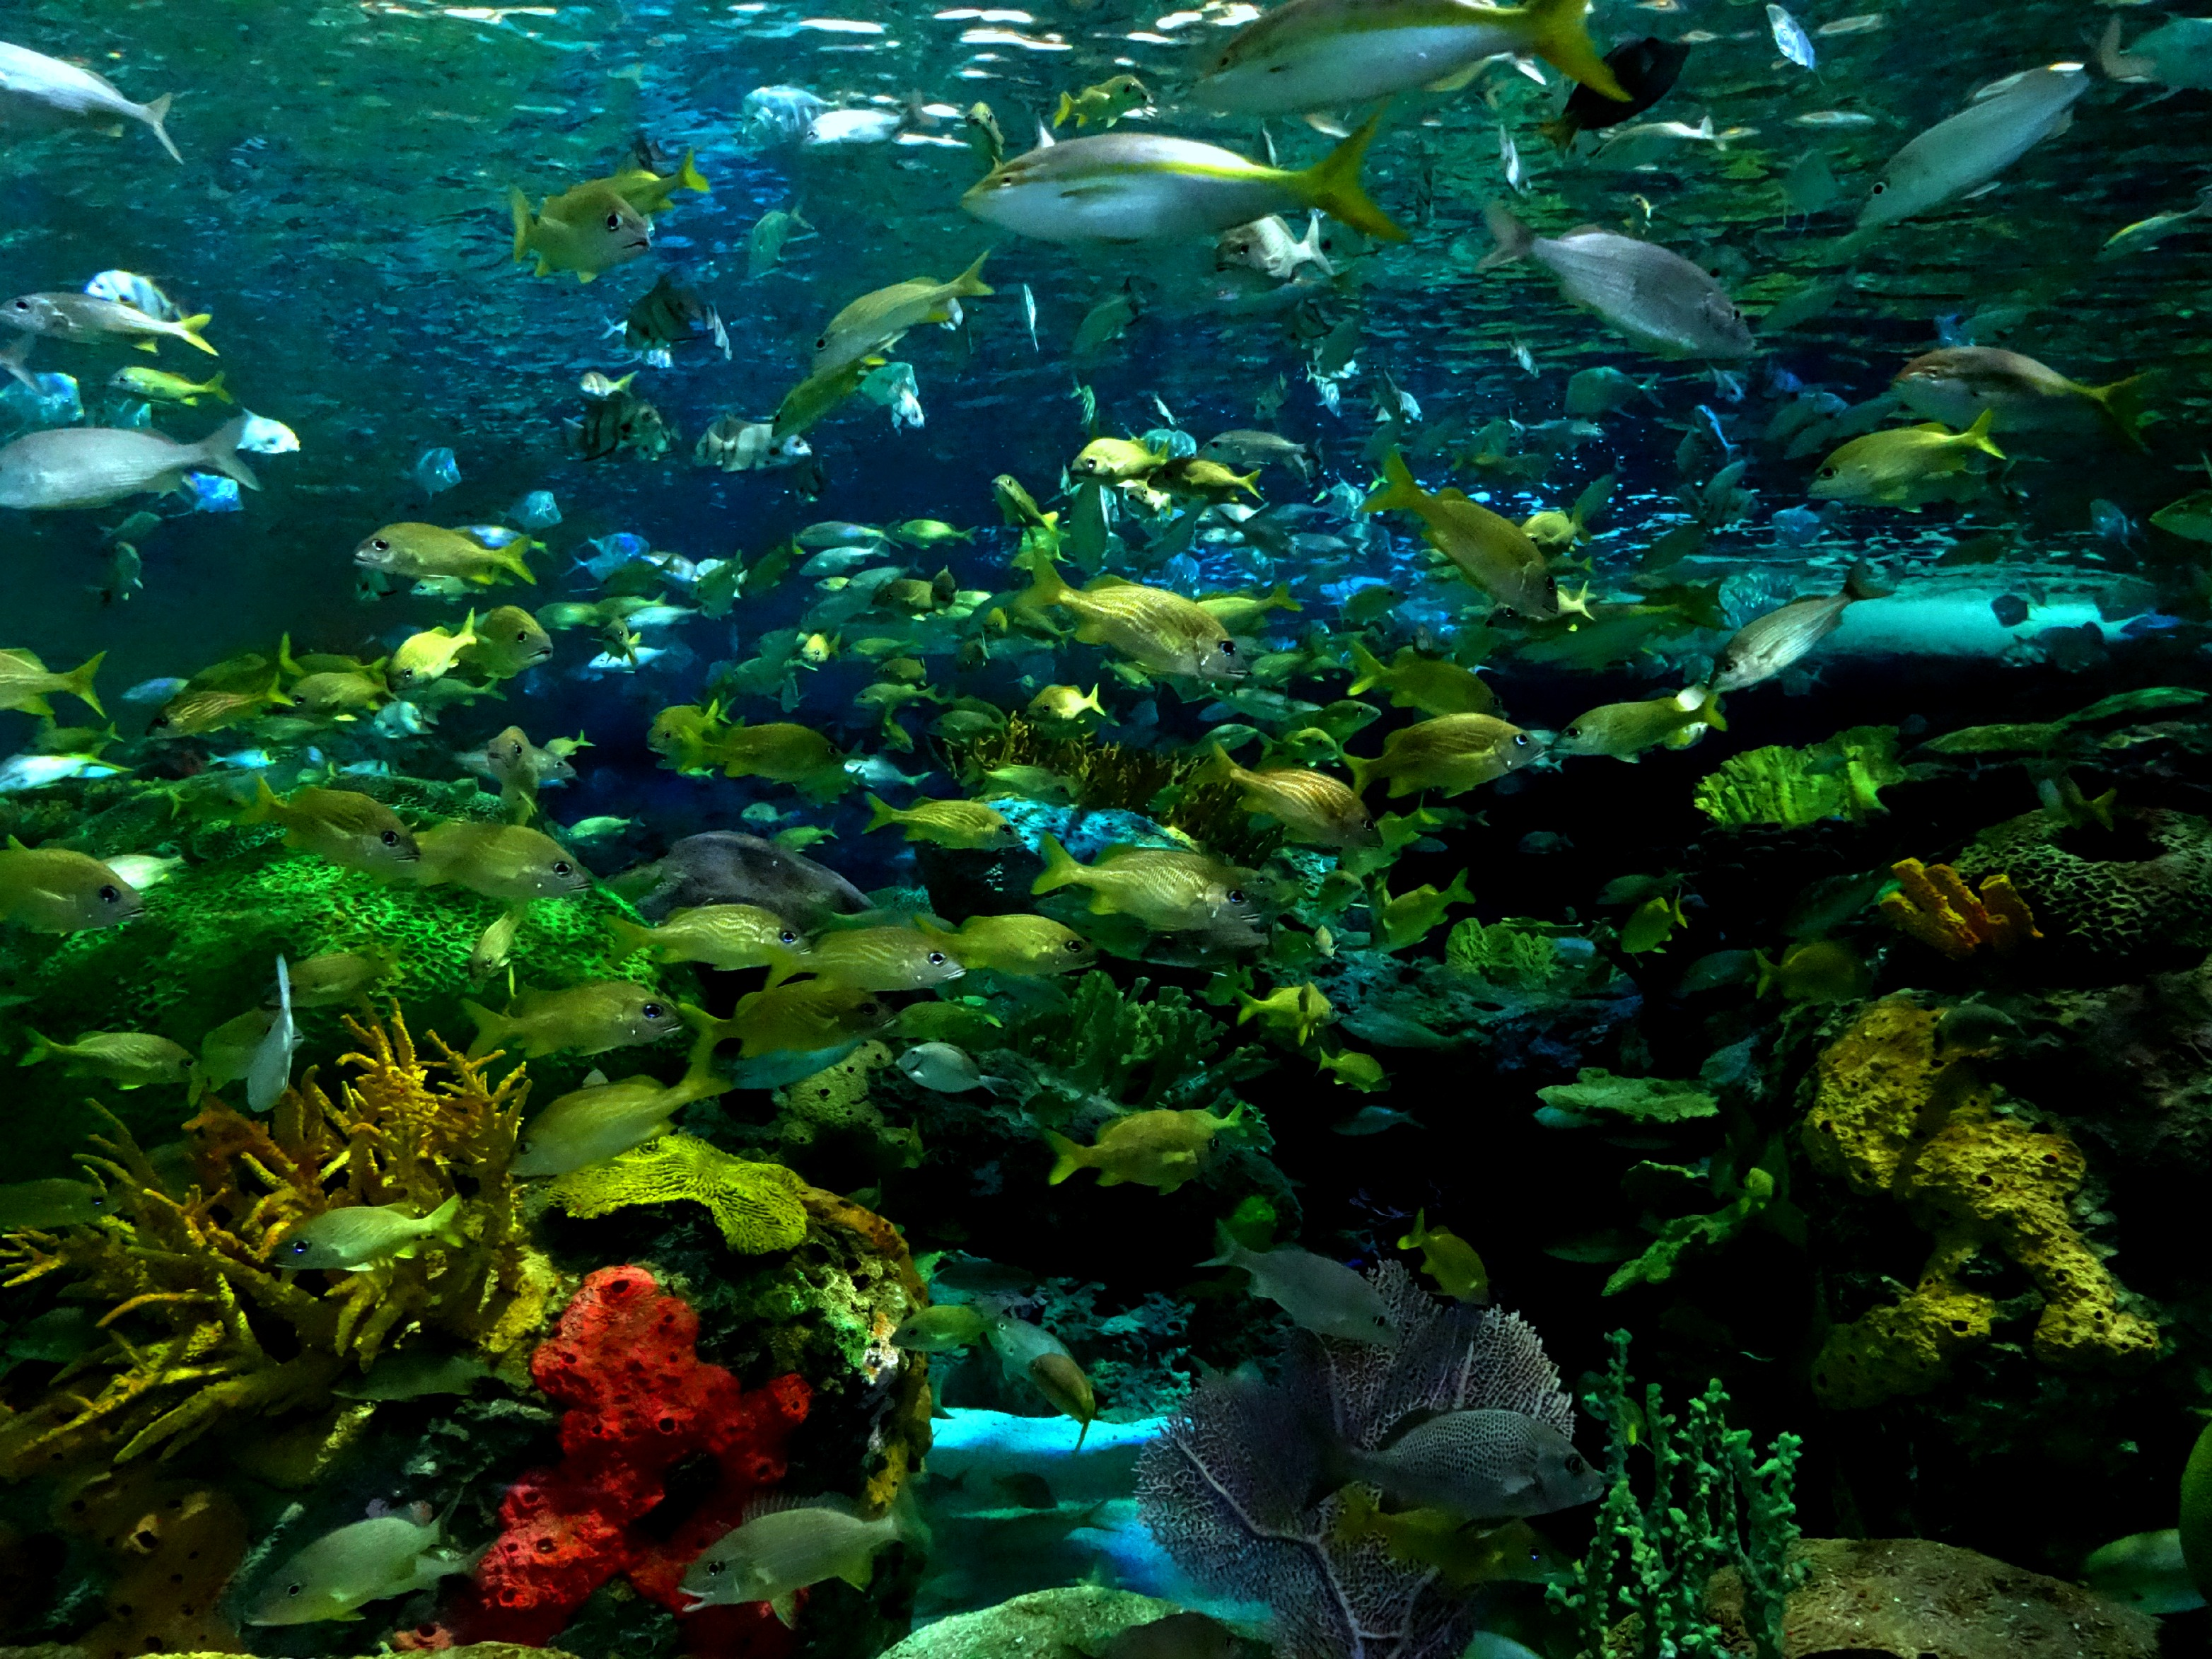 Fish aquarium in canada -  Add Heart Pounding Excitement And A Splash Of Awe And That S What You Ll Find In The Depths Of The Dangerous Lagoon At Ripley S Aquarium Of Canada